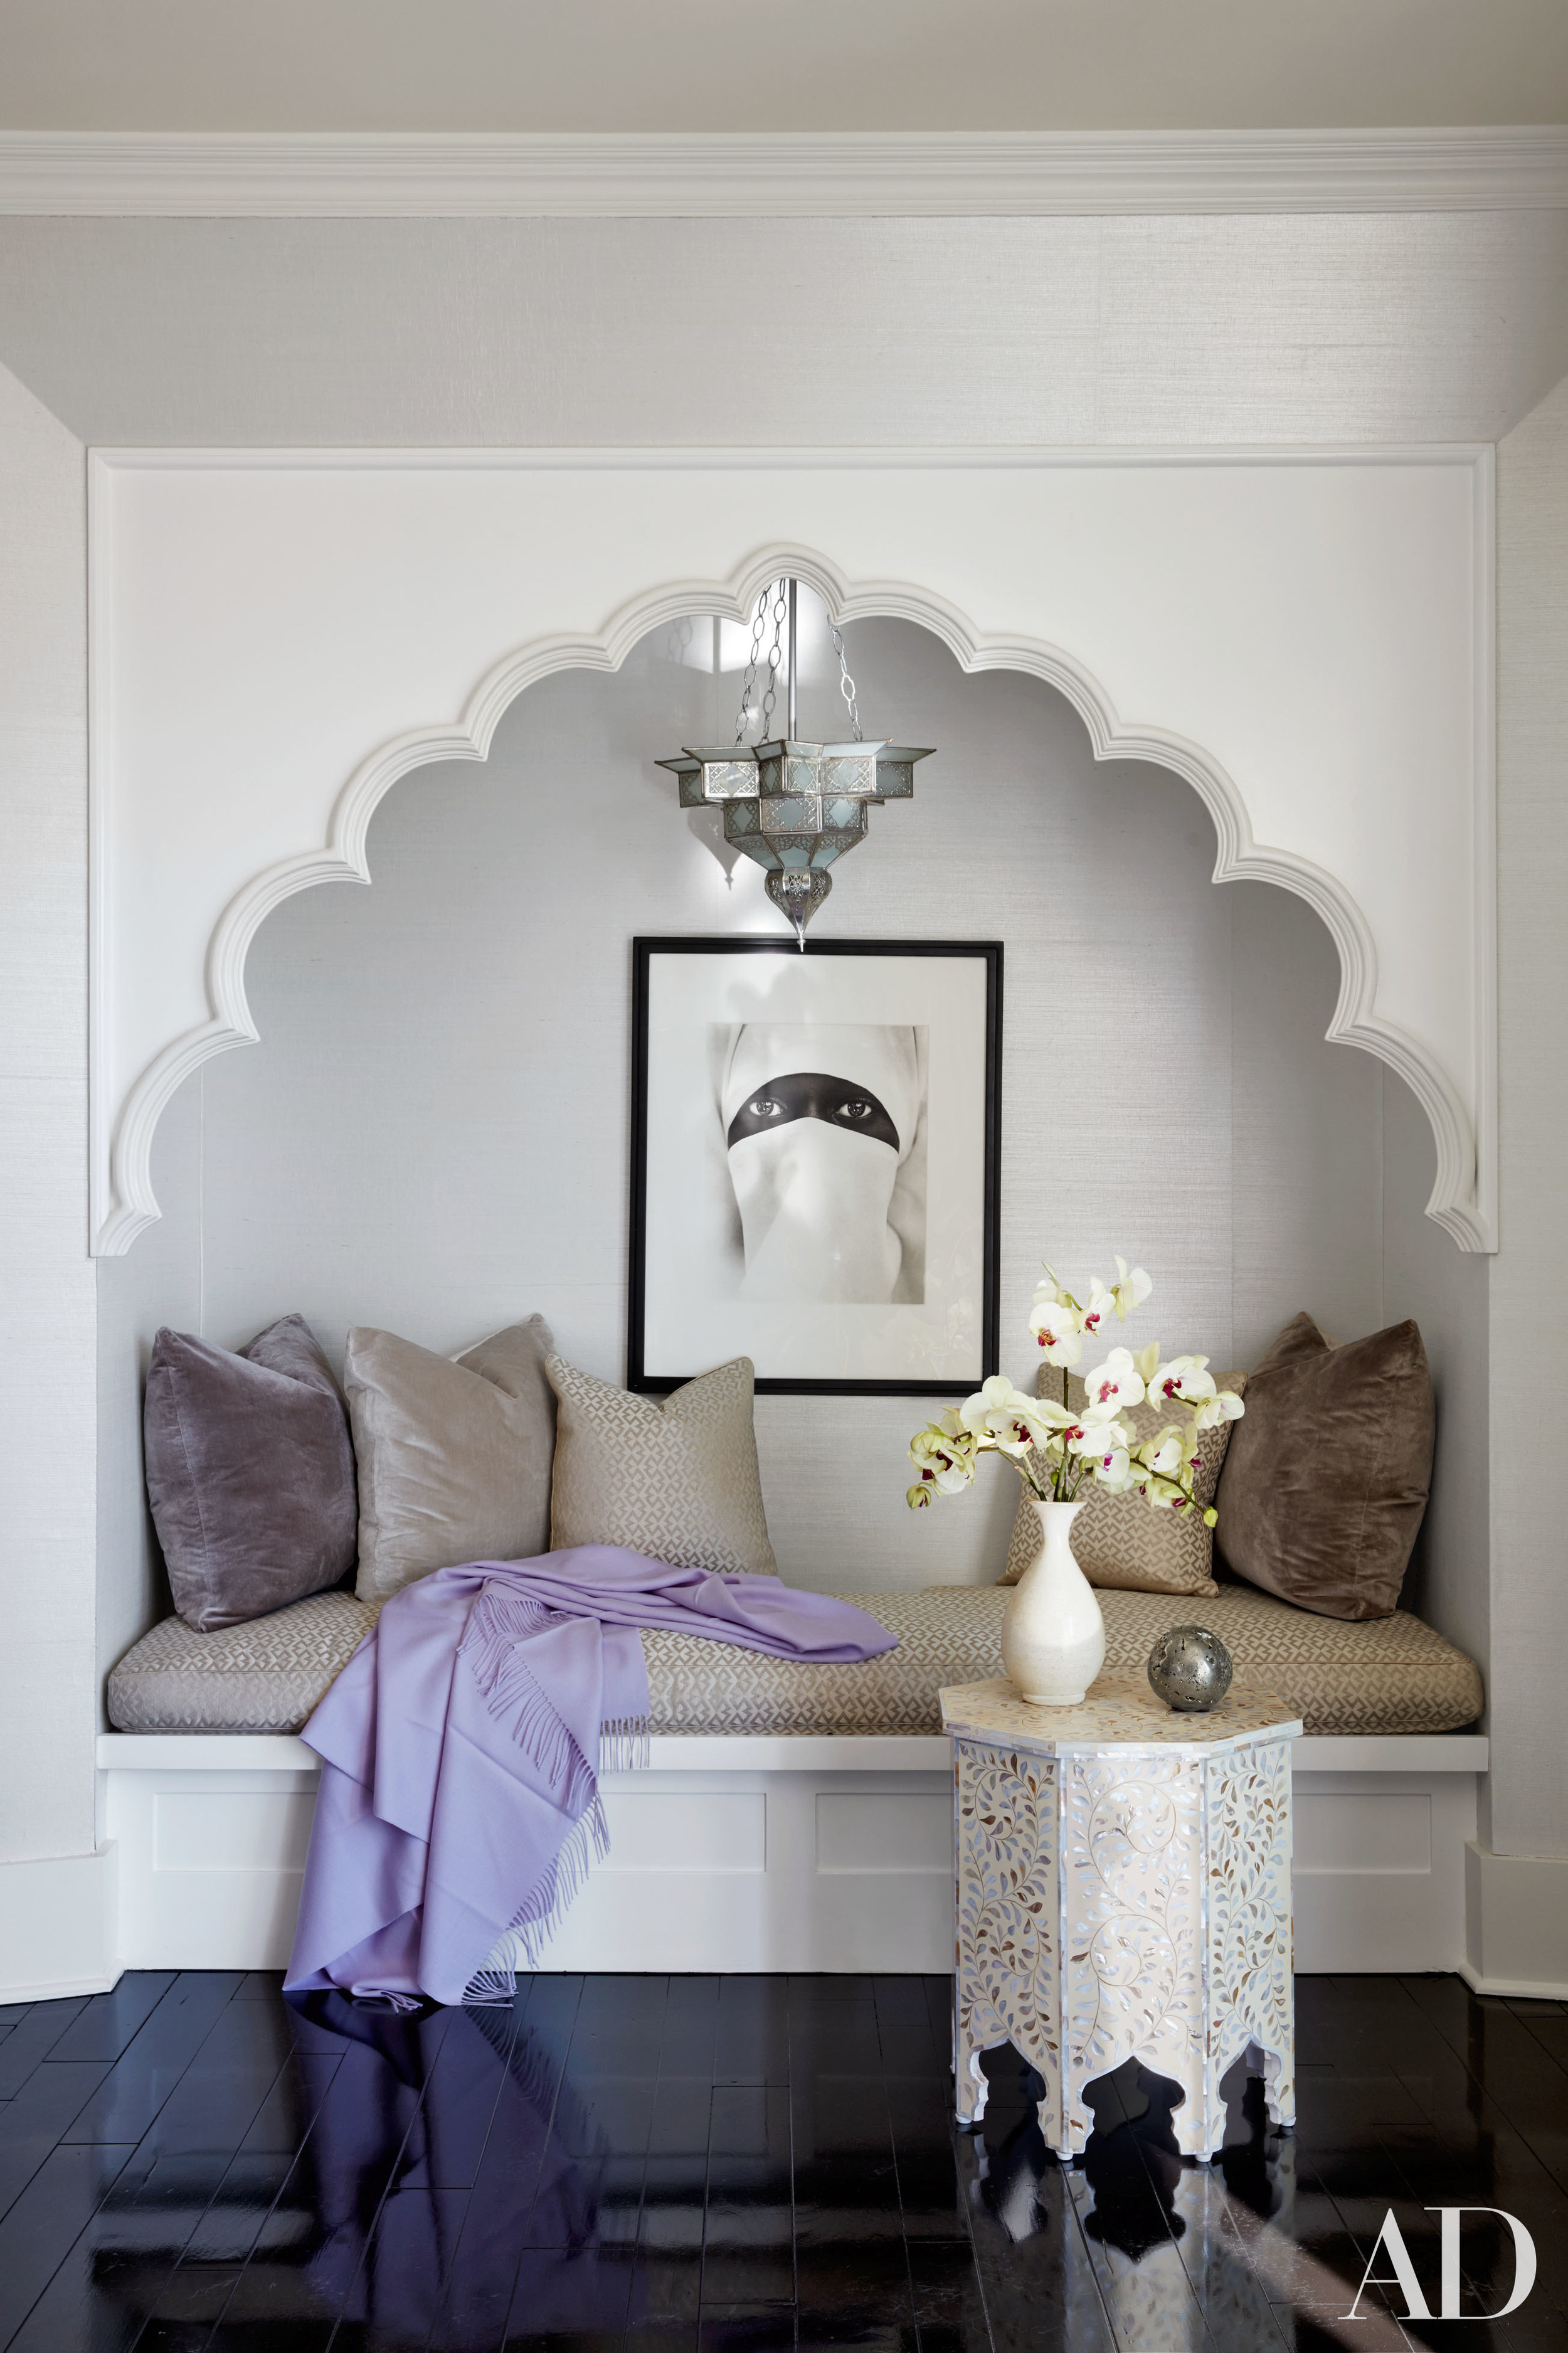 All pictures from  Architectural Digest